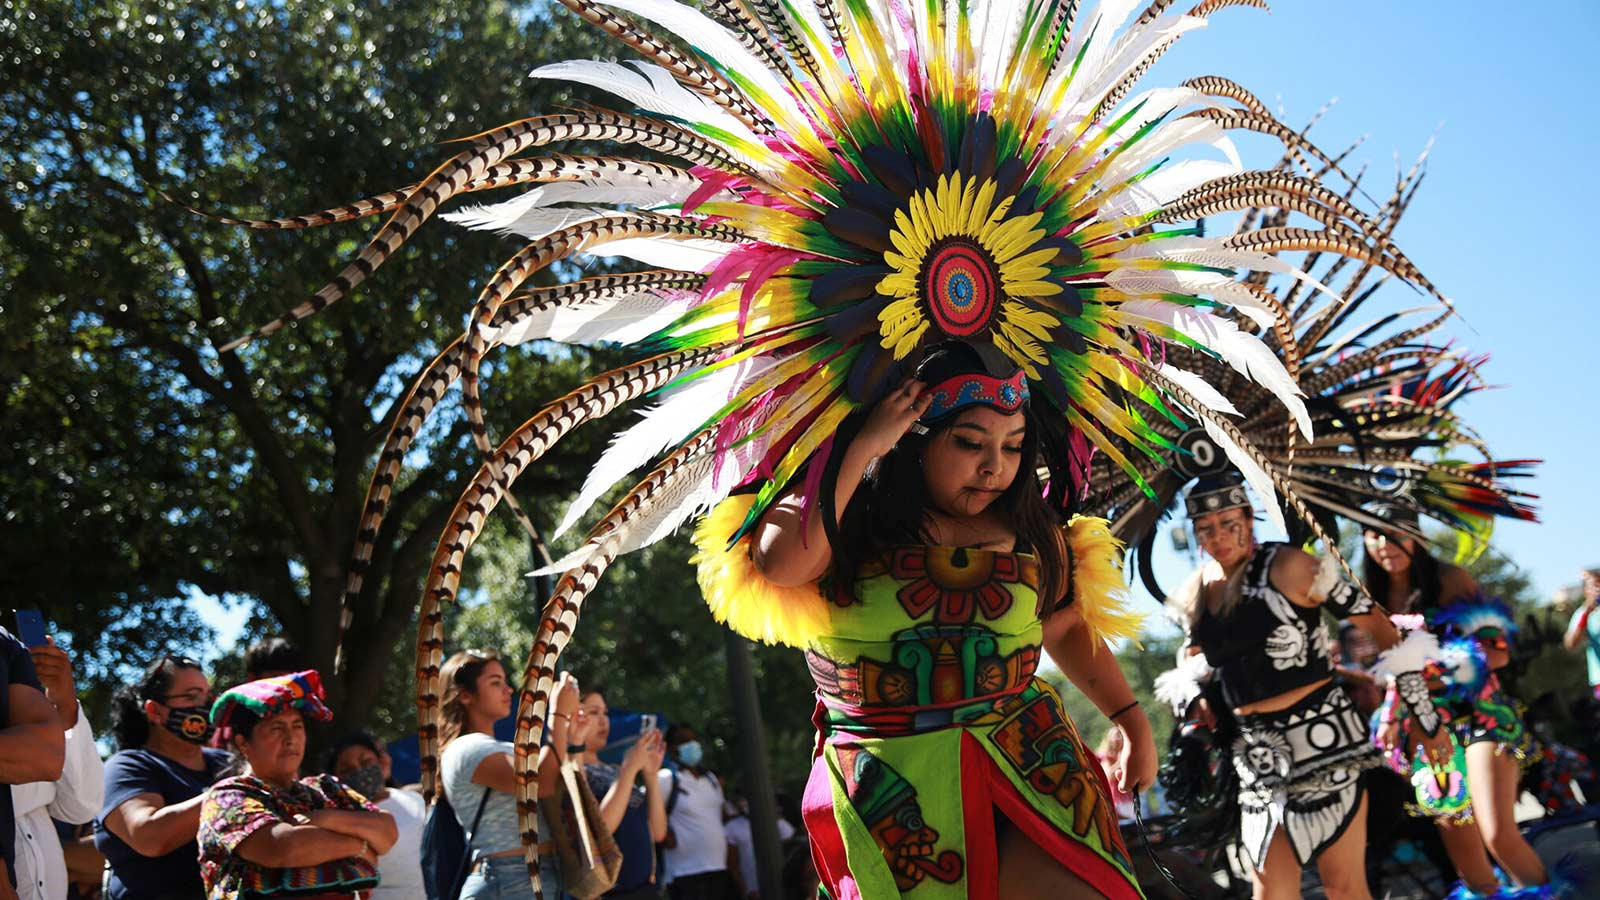 Fatima Garcia of the group Danza Azteca Guadalupana dances during an event celebrating Indigenous Peoples' Day in Austin, Texas, on Saturday.